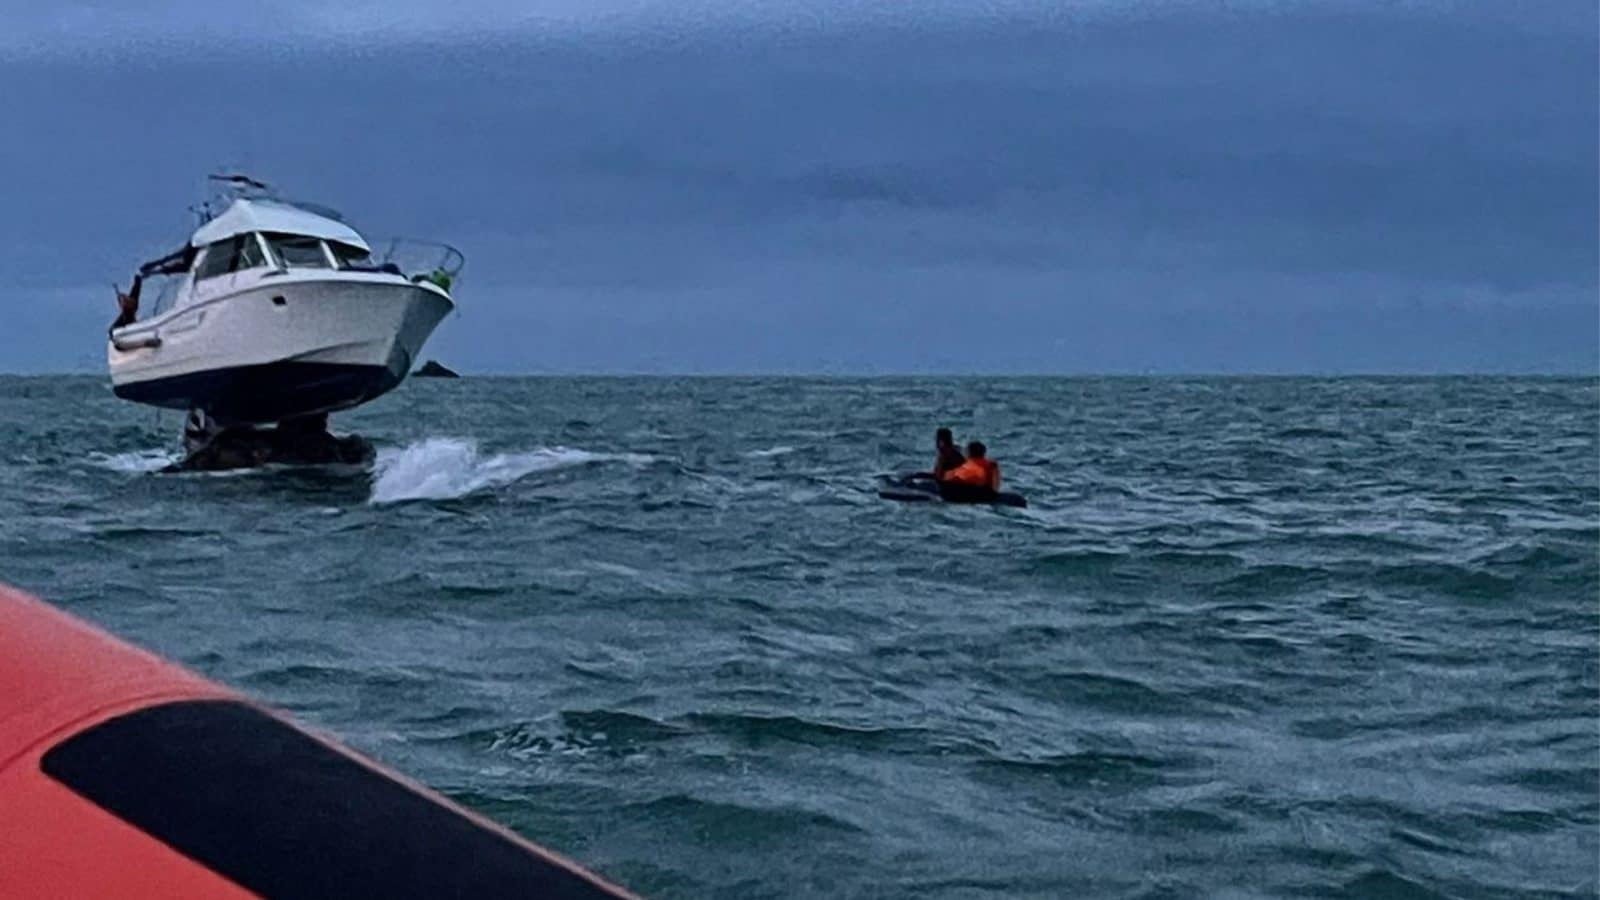 Boat Gets Stranded Atop Rocks in English Channel, Survivors Rescued After 12 Hours